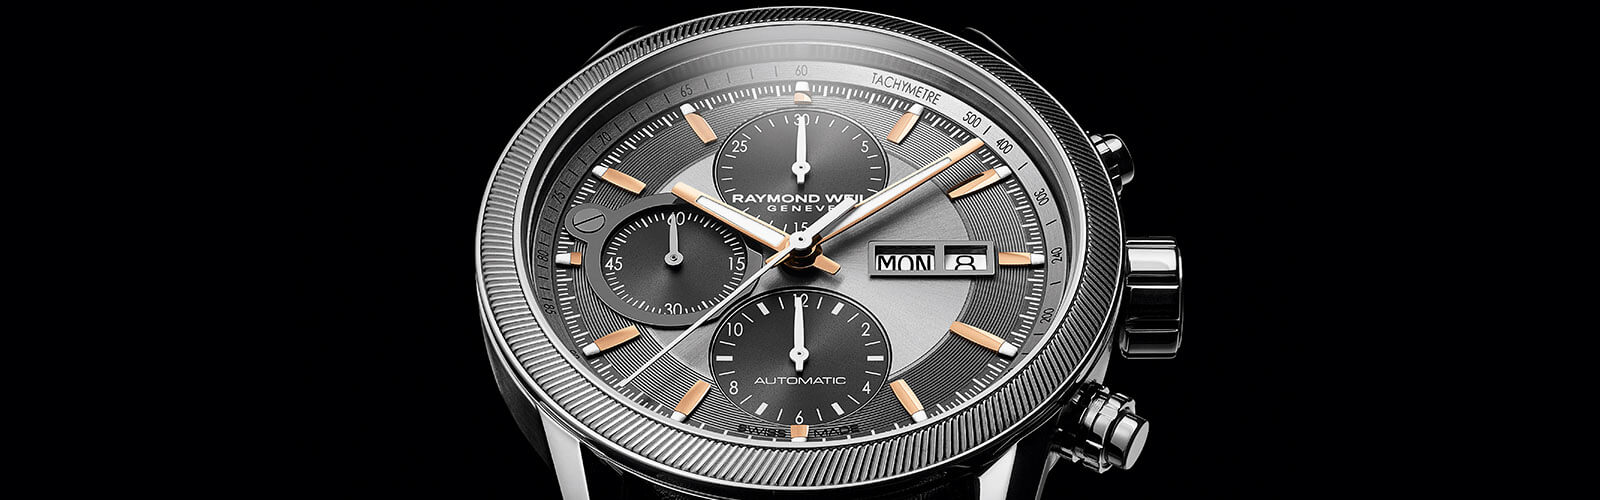 RAYMOND WEIL Freelancer Steel